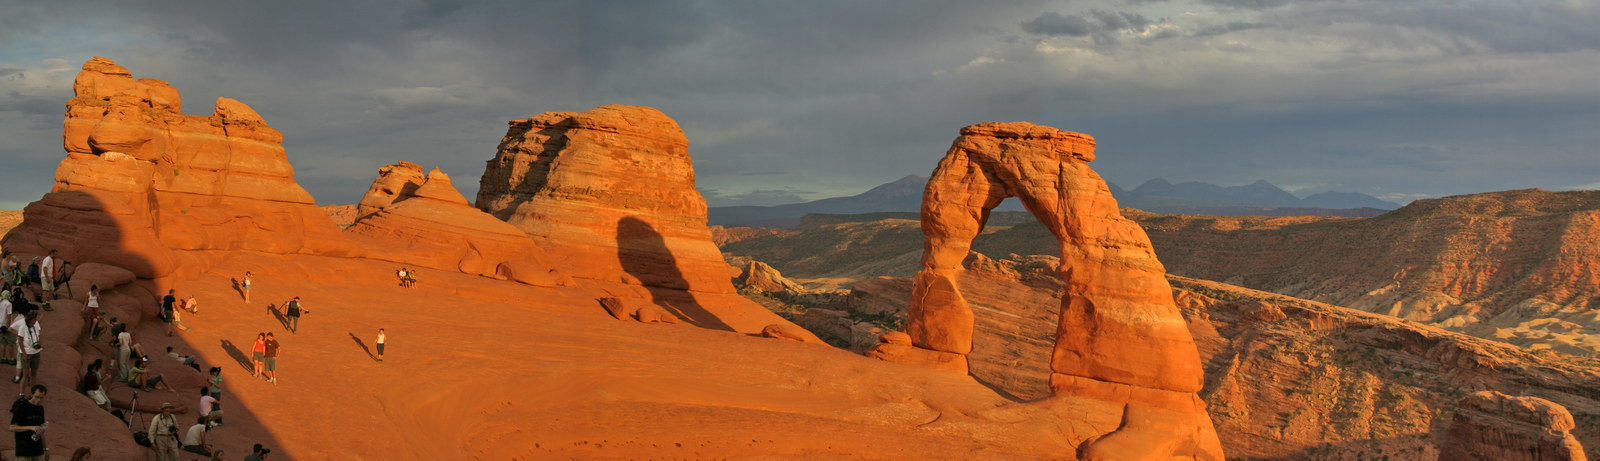 Panoramique Delicate Arch